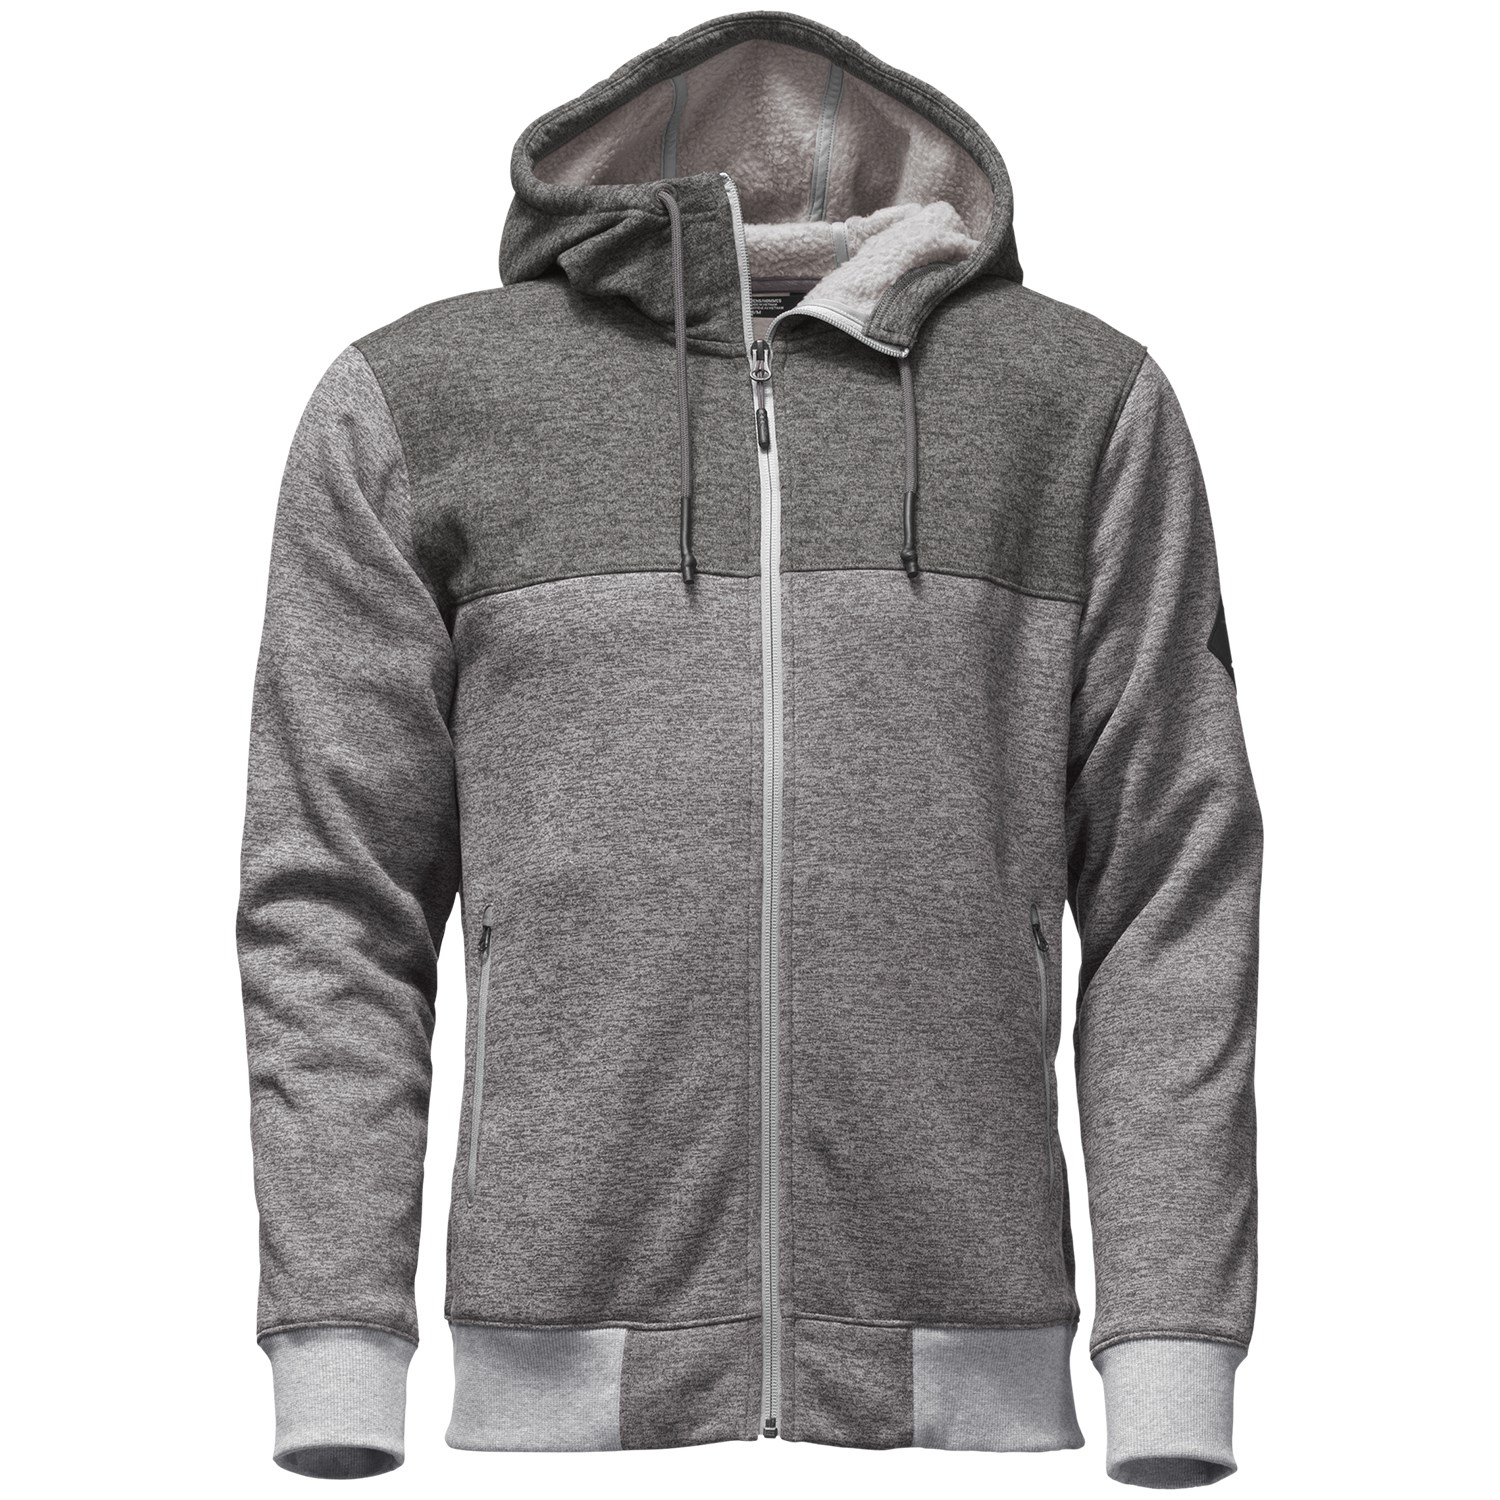 ce07c194ce69 The North Face Tech Sherpa Full Zip Hoodie